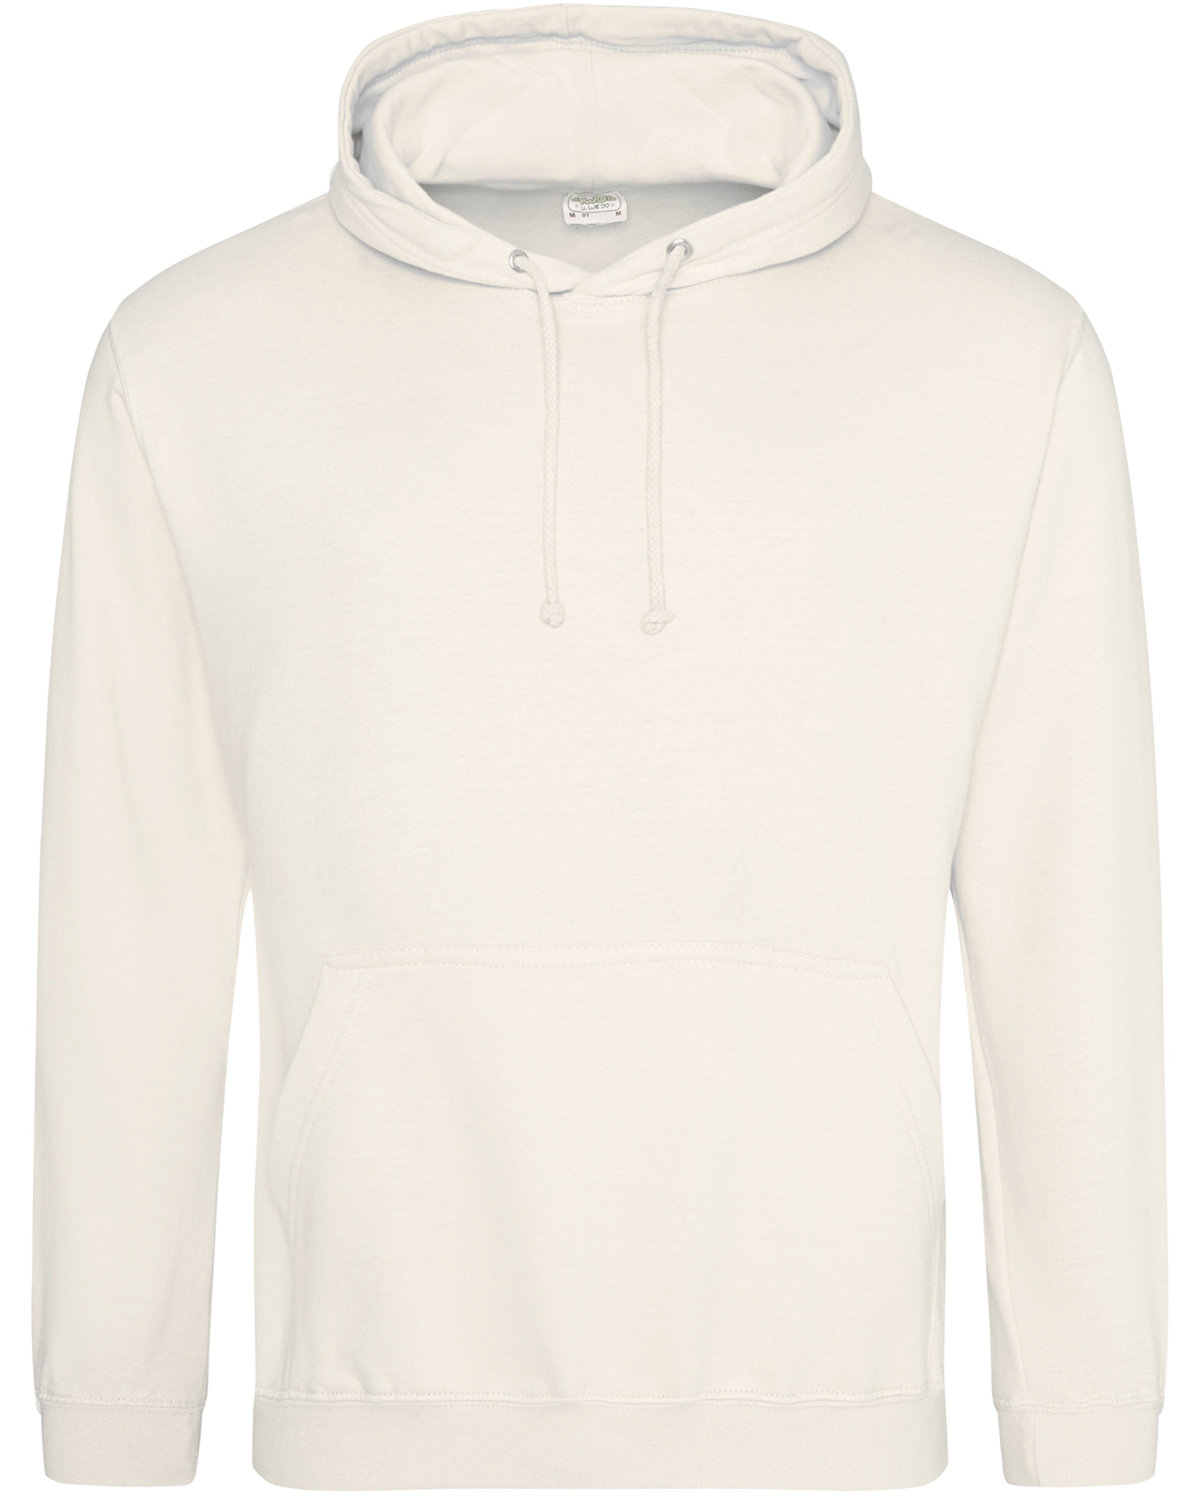 Just Hoods By AWDis Men's 80/20 Midweight College Hooded Sweatshirt PREPARED FOR DYE